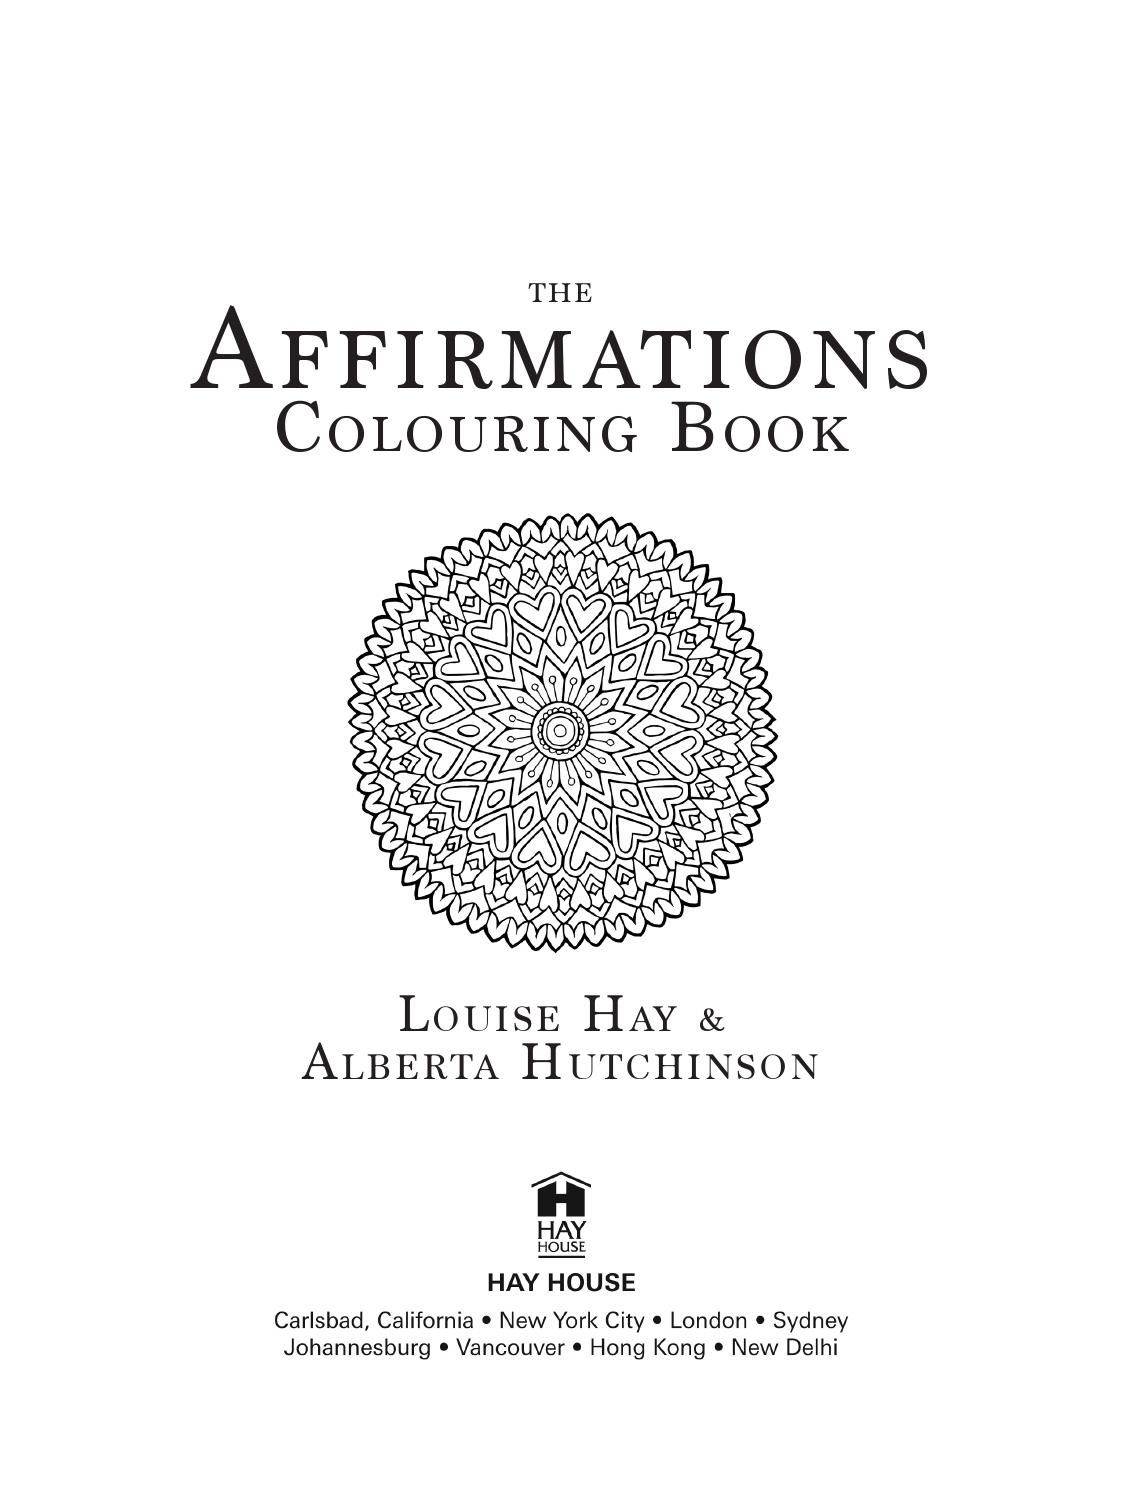 The Affirmations Colouring Book By Louise Hay Journals